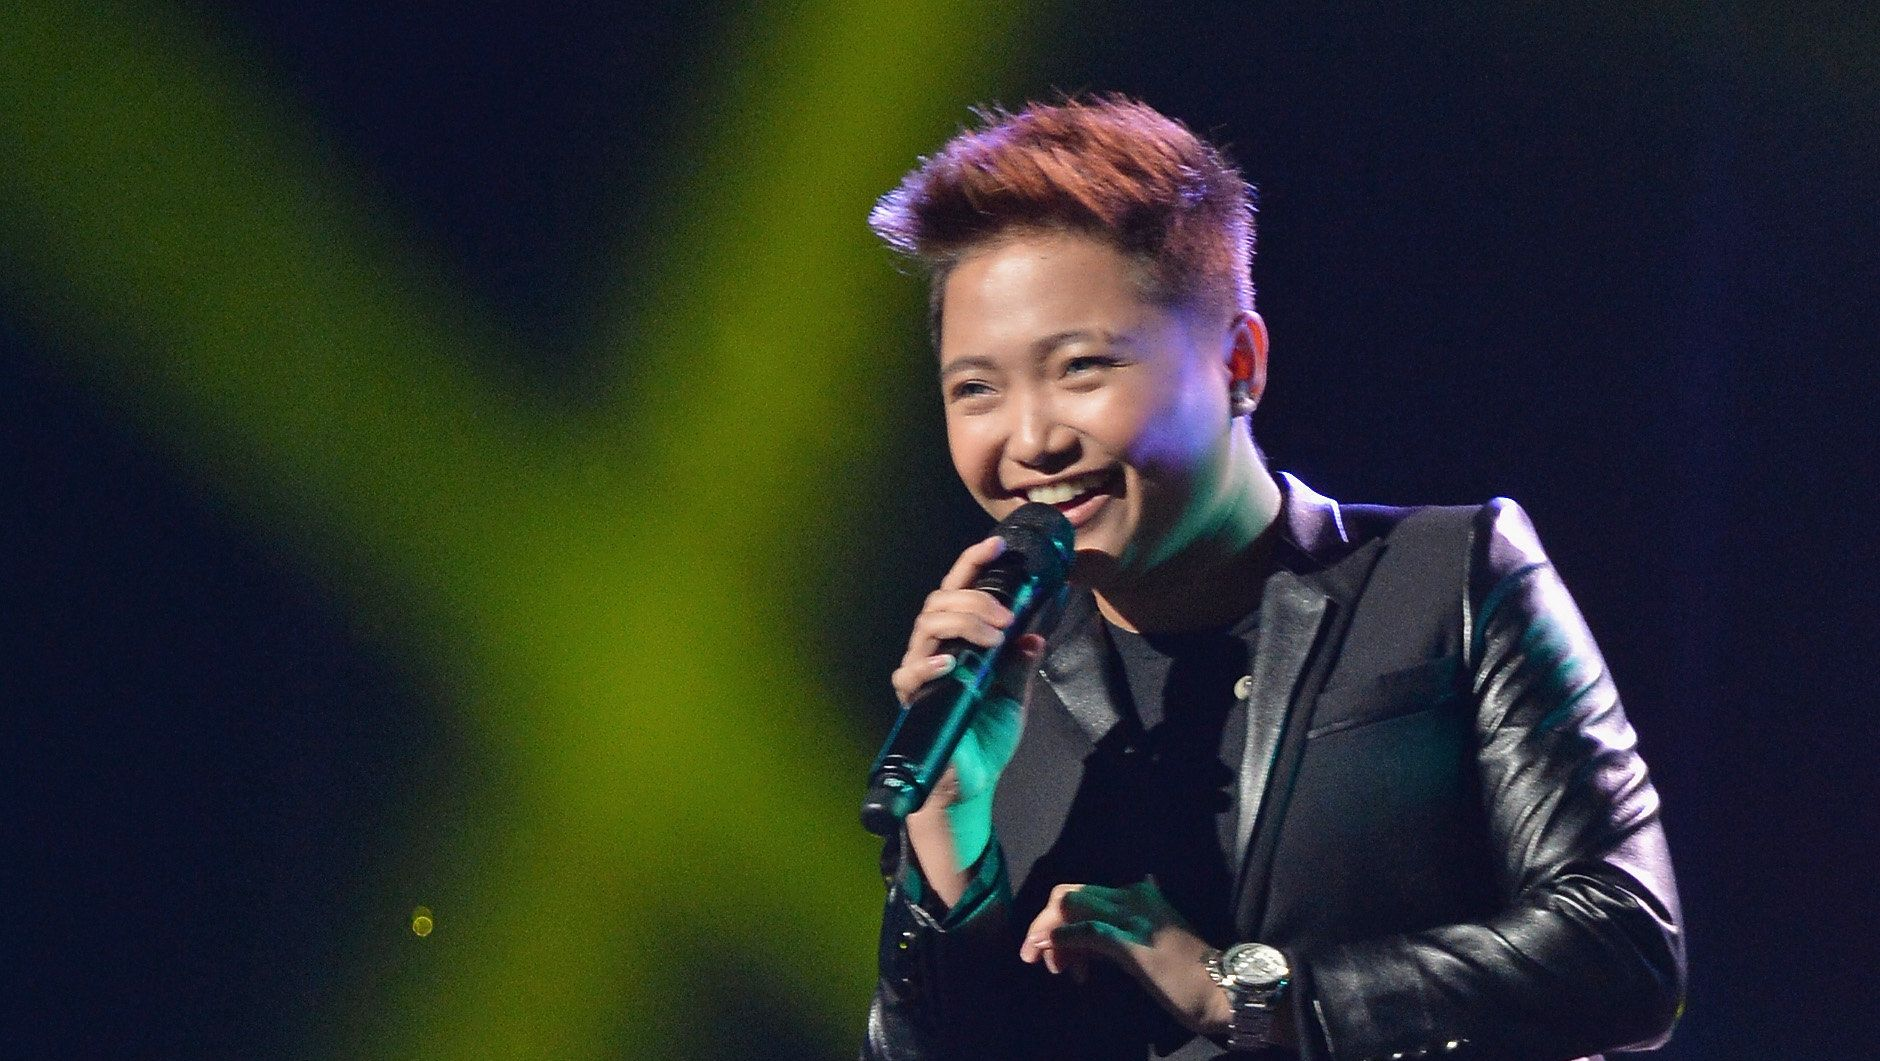 'Glee' Star Charice Pempengco Changes Name to Jake Zyrus